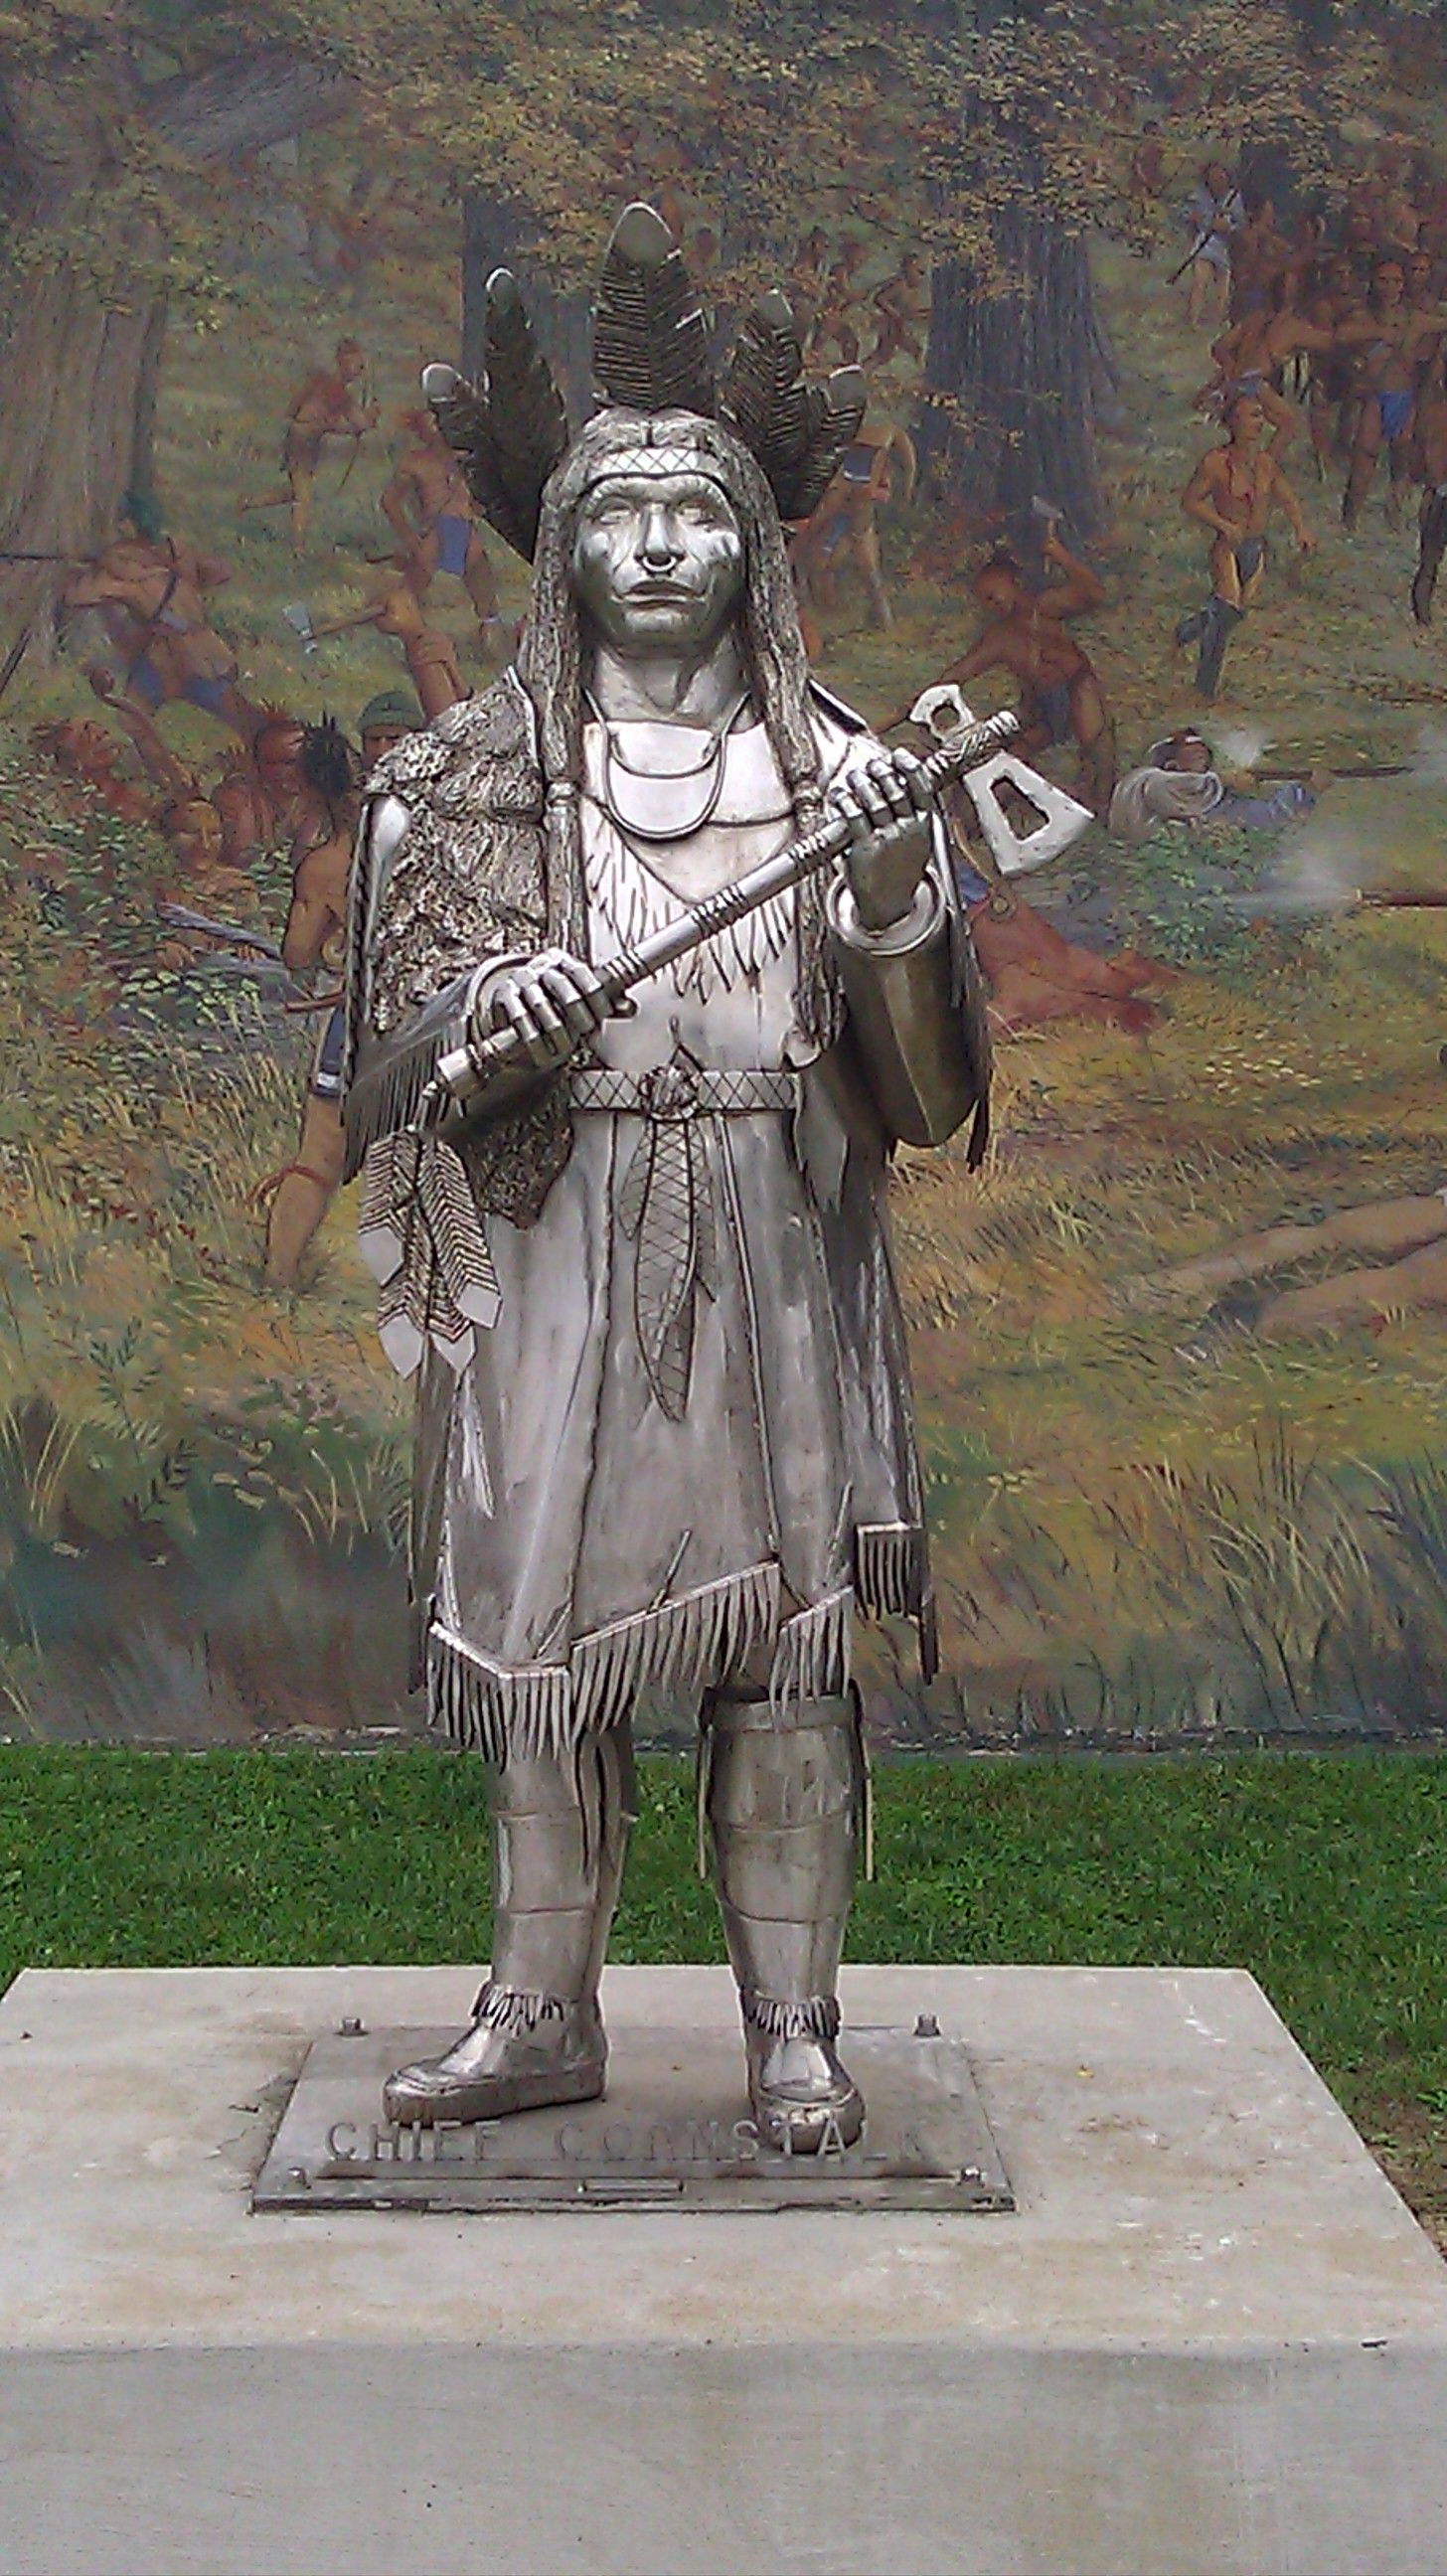 I love monuments and statutes   this one is Chief Cornstalk